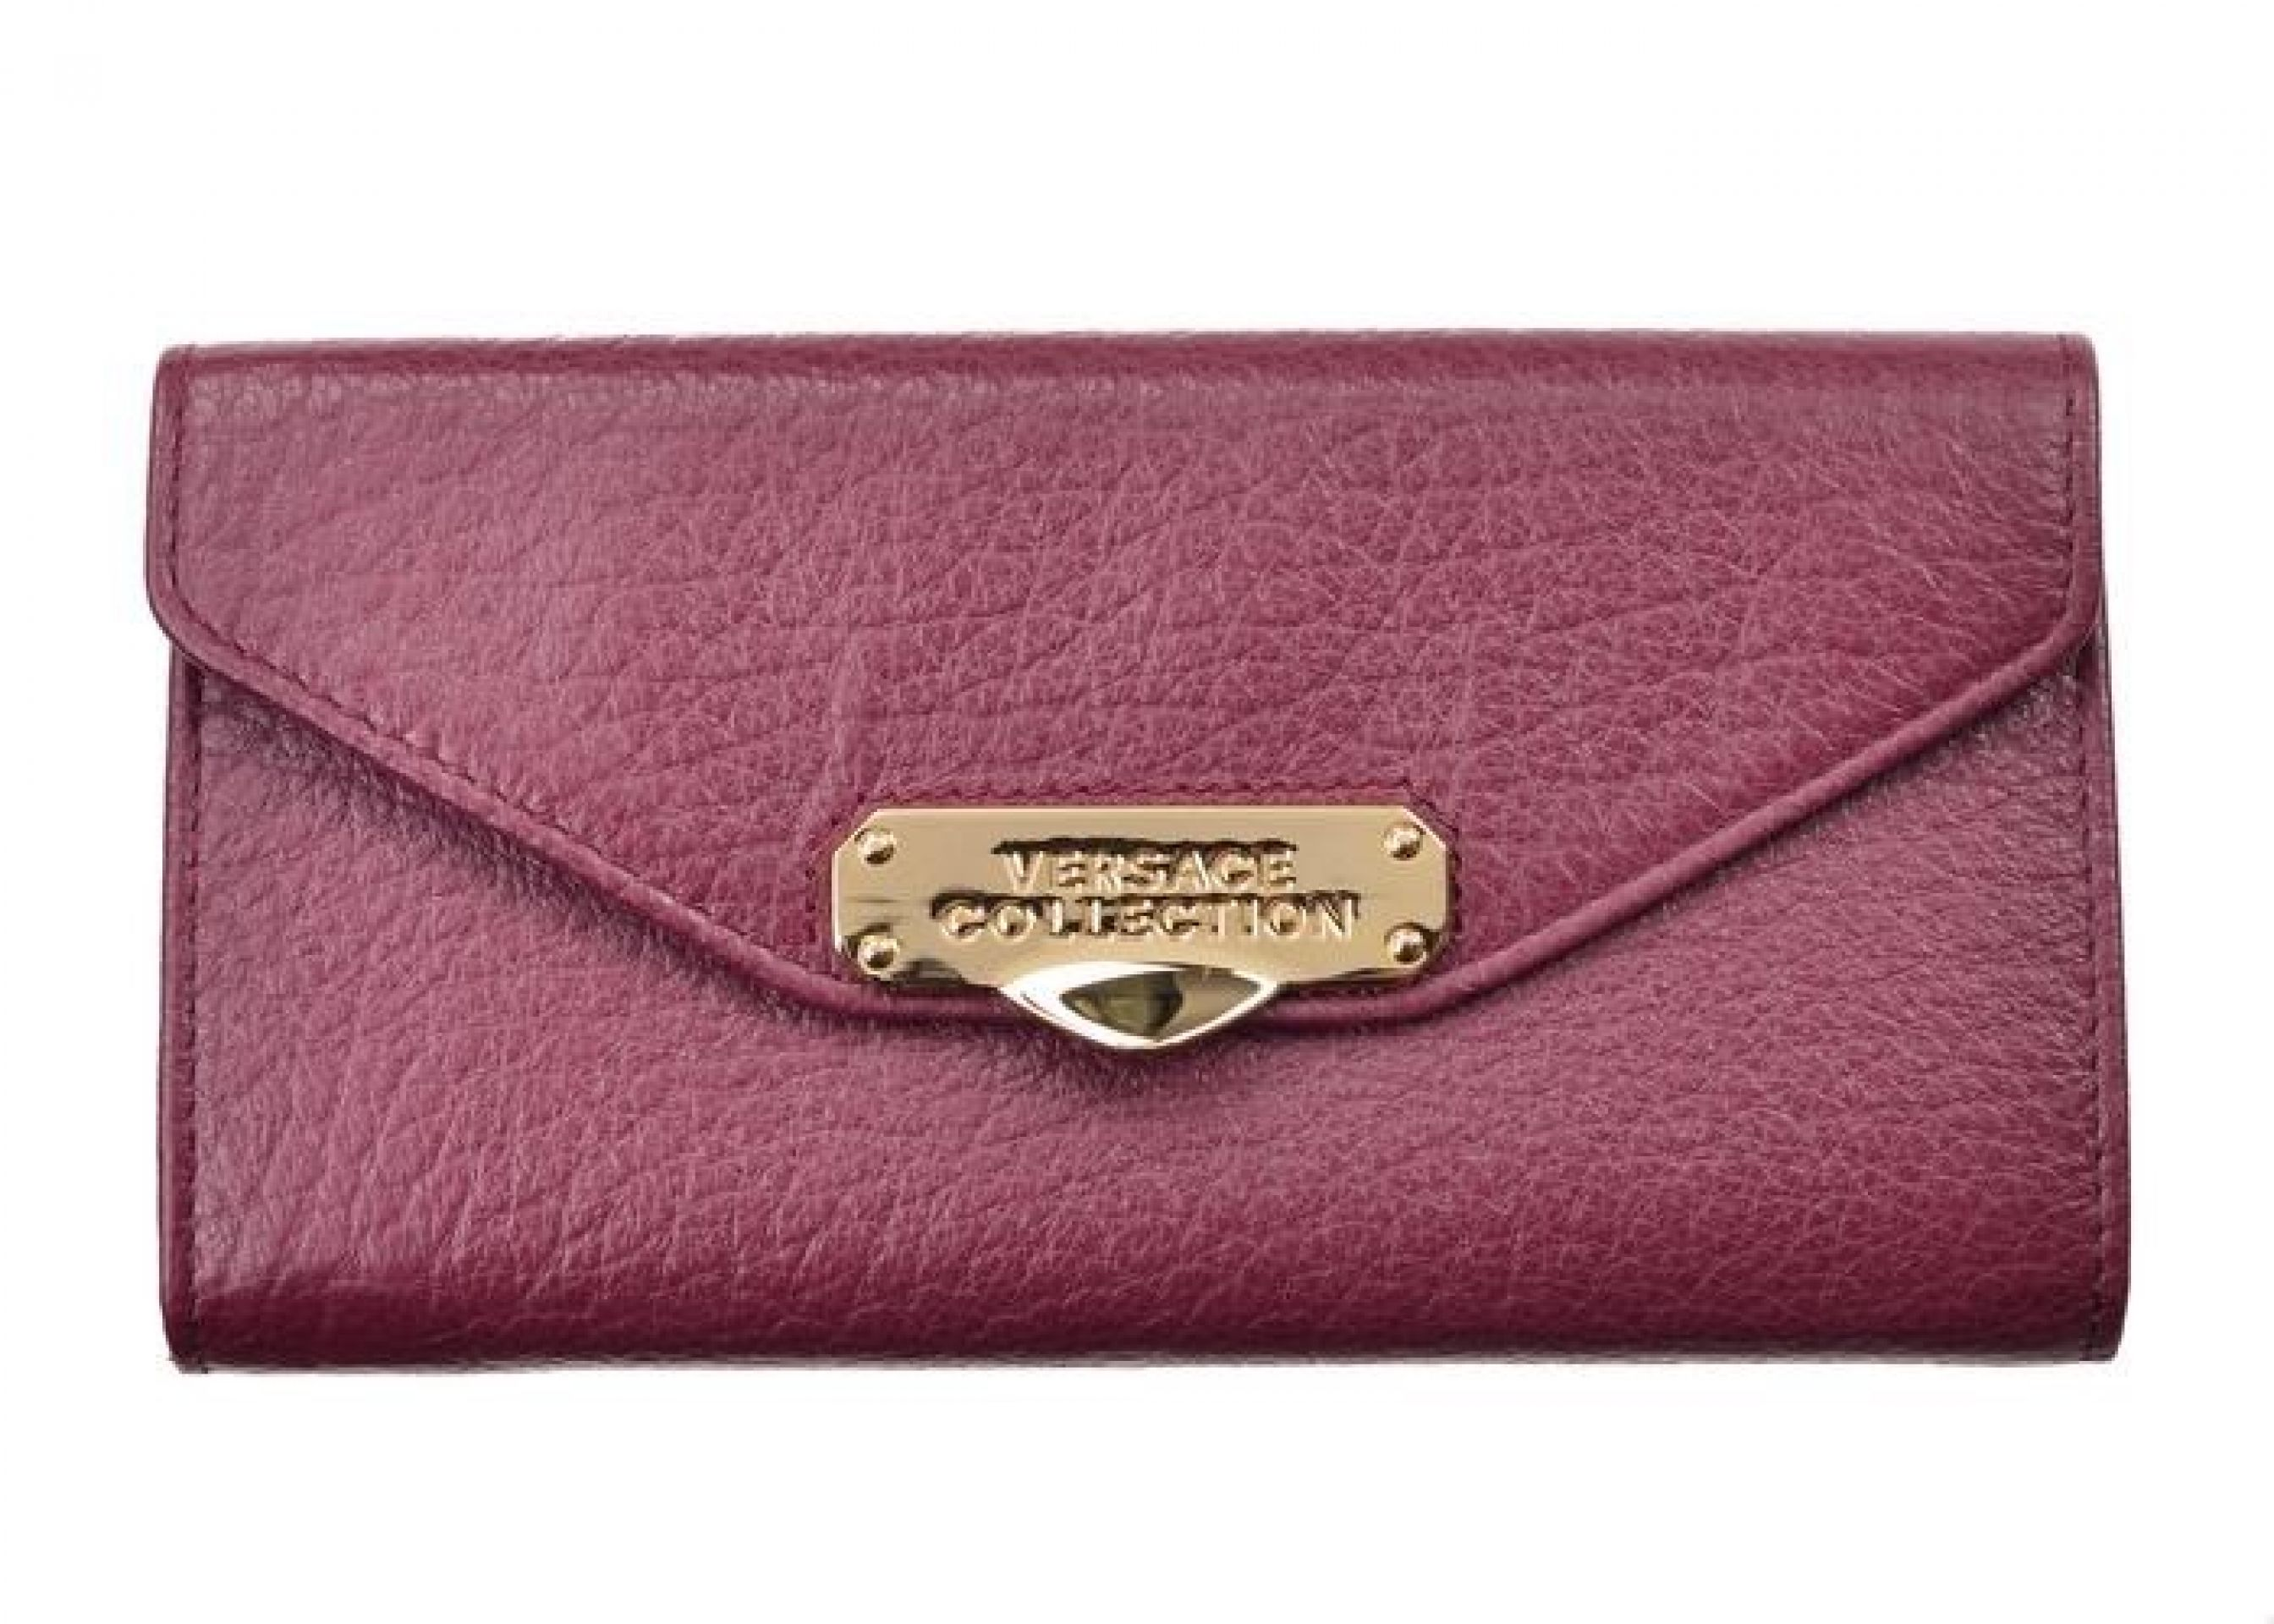 VERSACE COLLECTION SOLID BURGUNDY GRAINED LEATHER CONTINENTAL WALLET